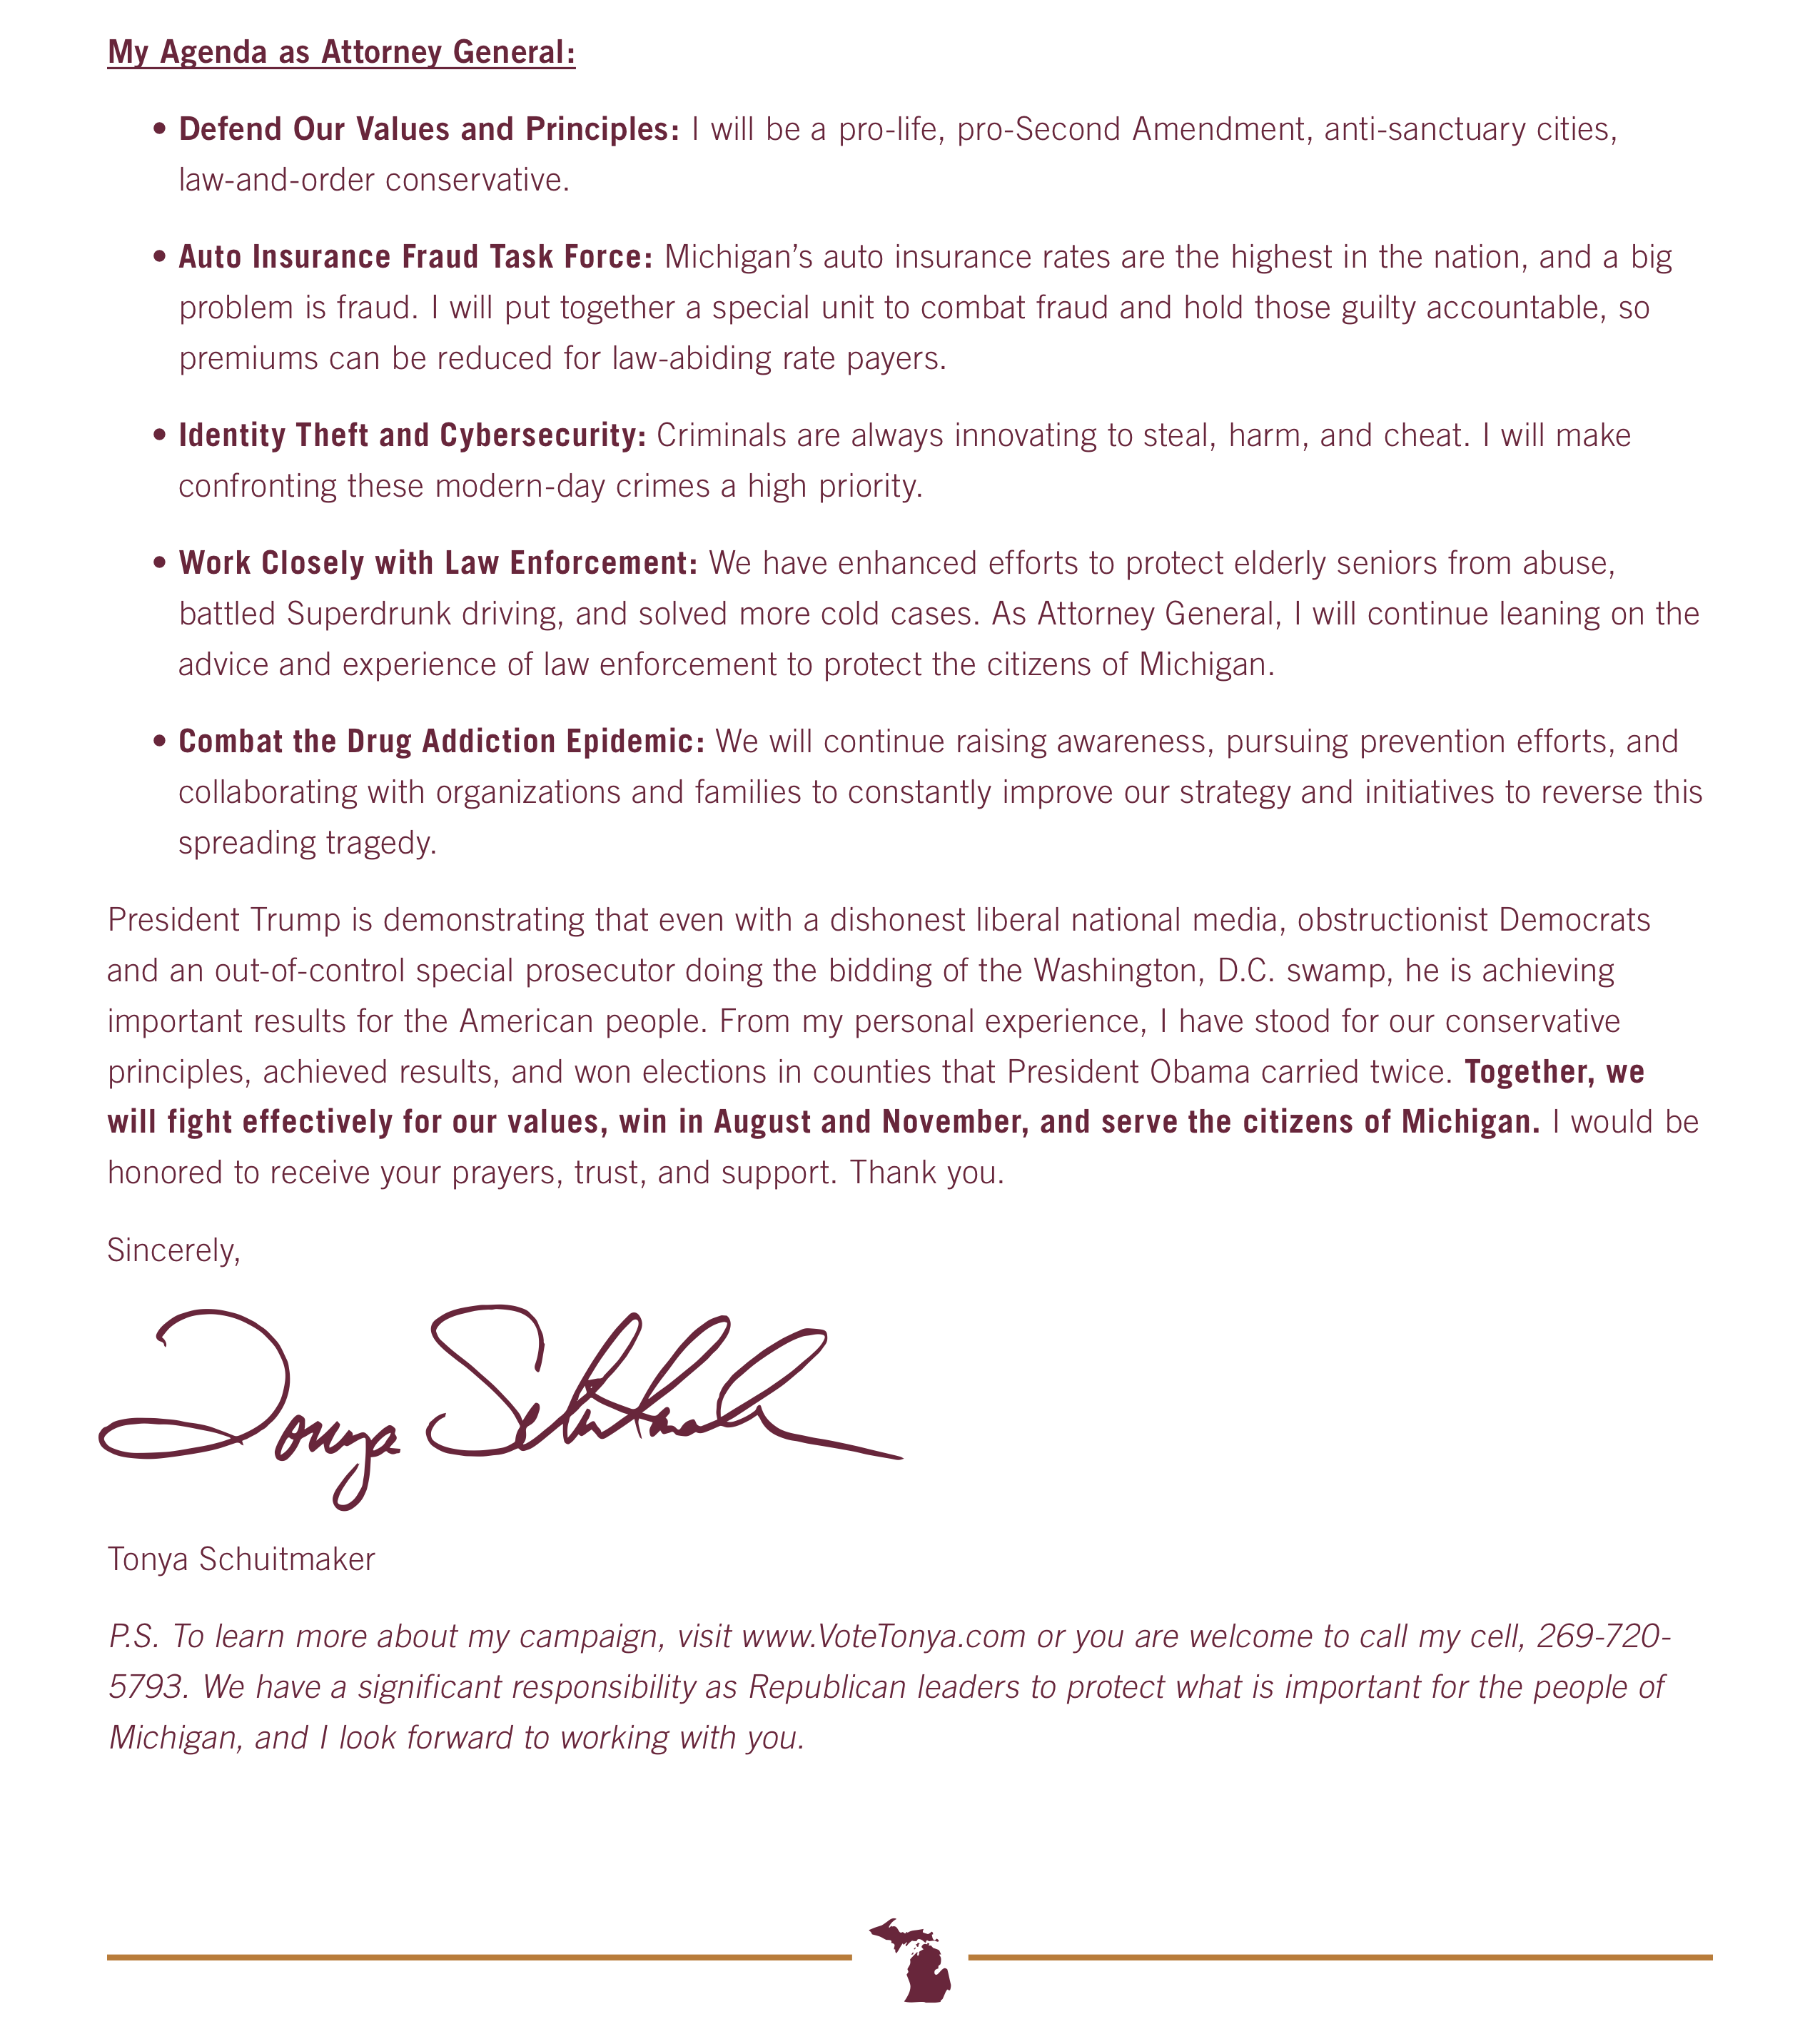 TS_Letter_Page_3.png